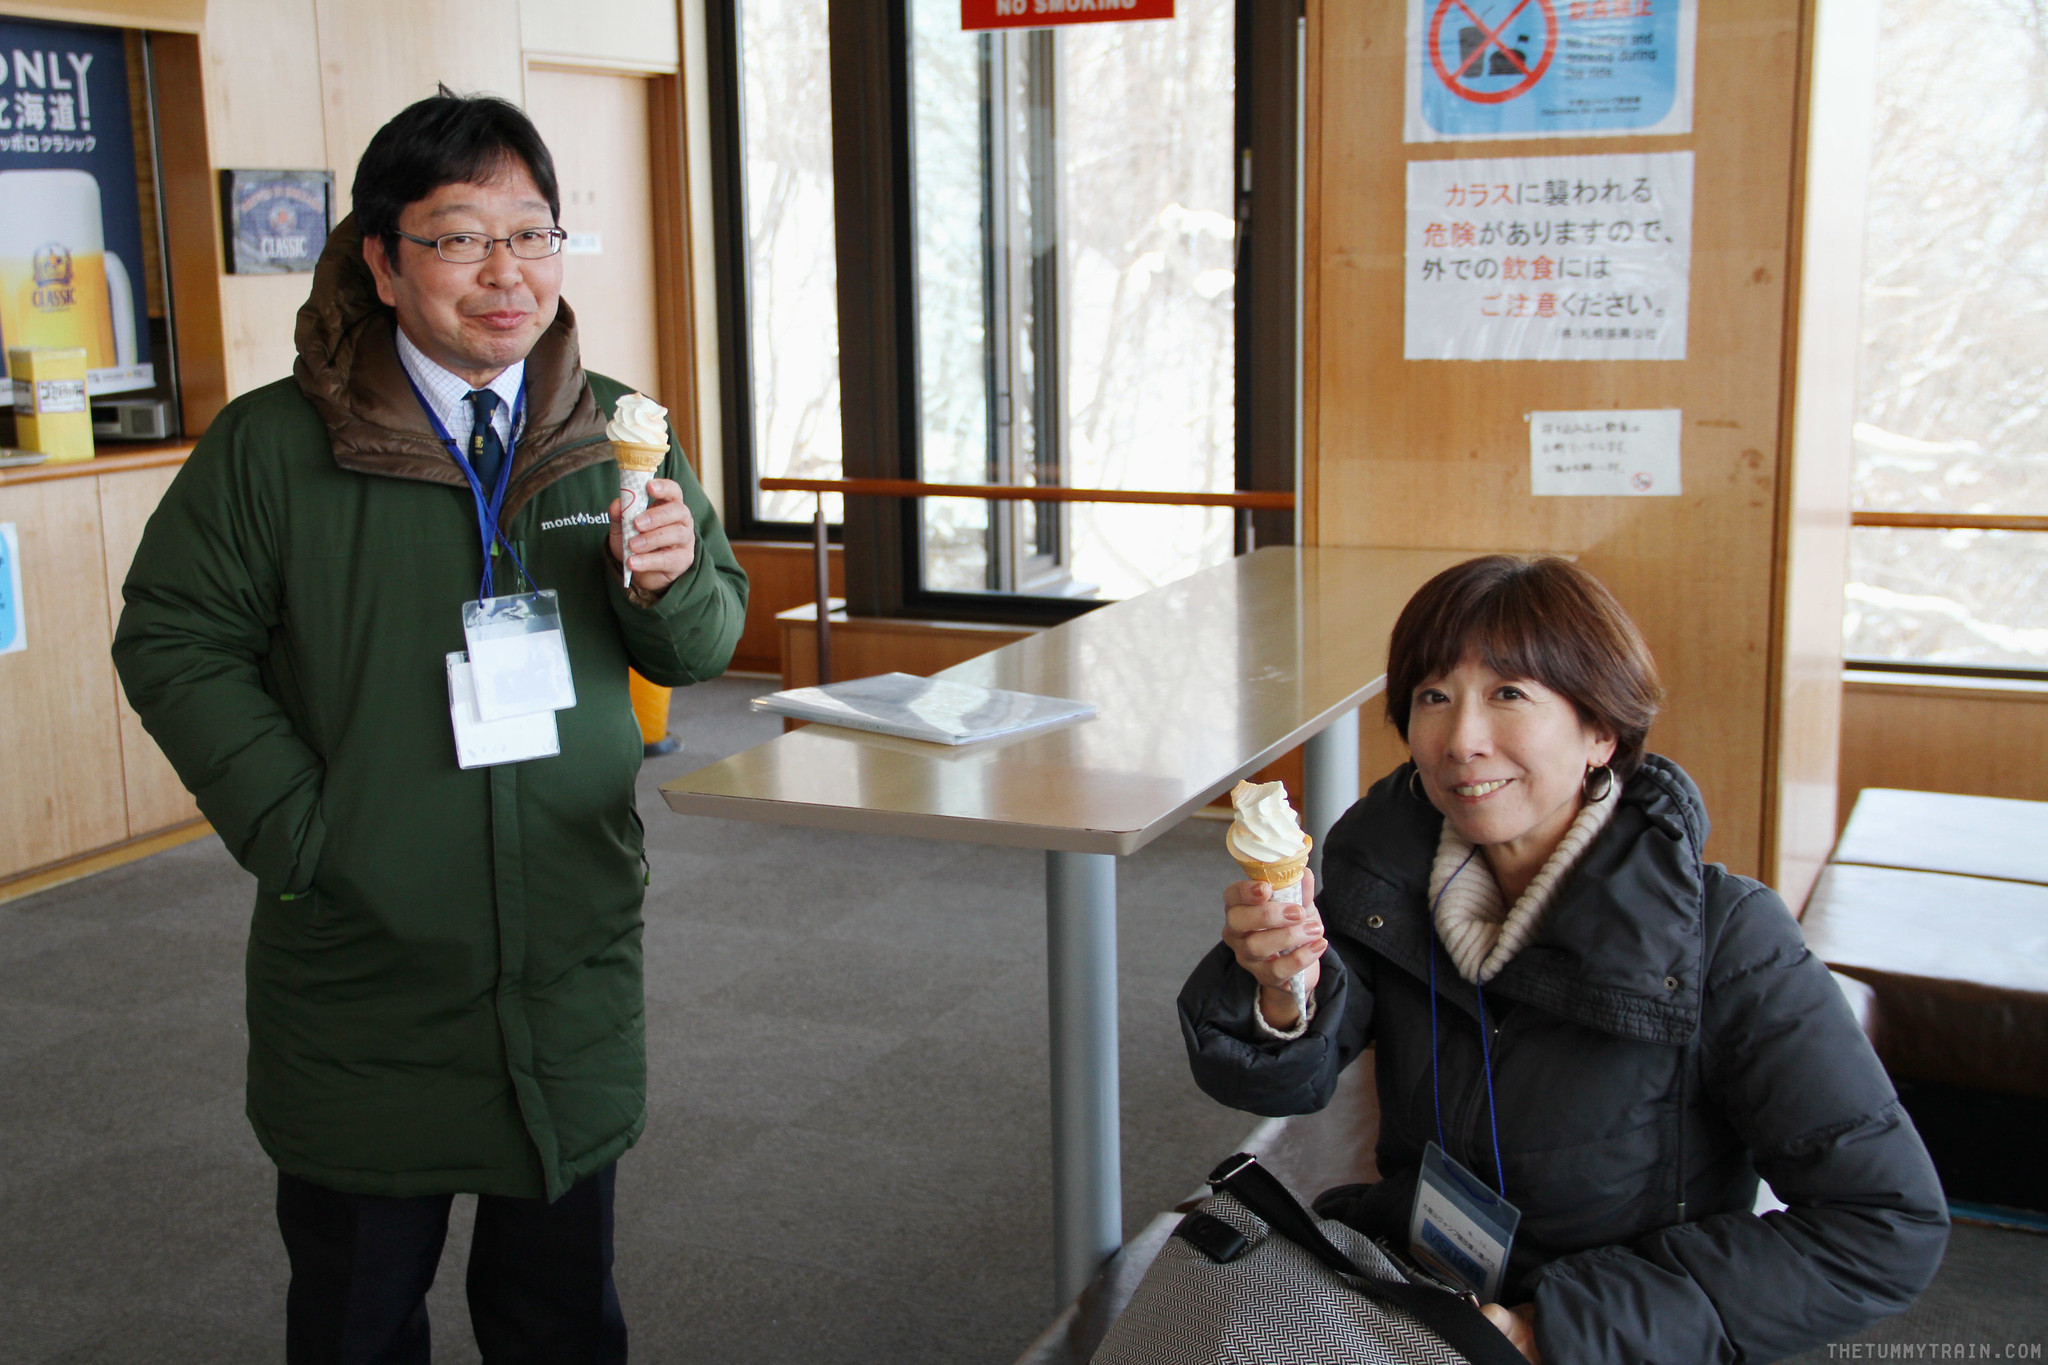 32876220136 ddf3b29ee3 k - 7 Foodie Experiences To Try for Your Sapporo Adventure